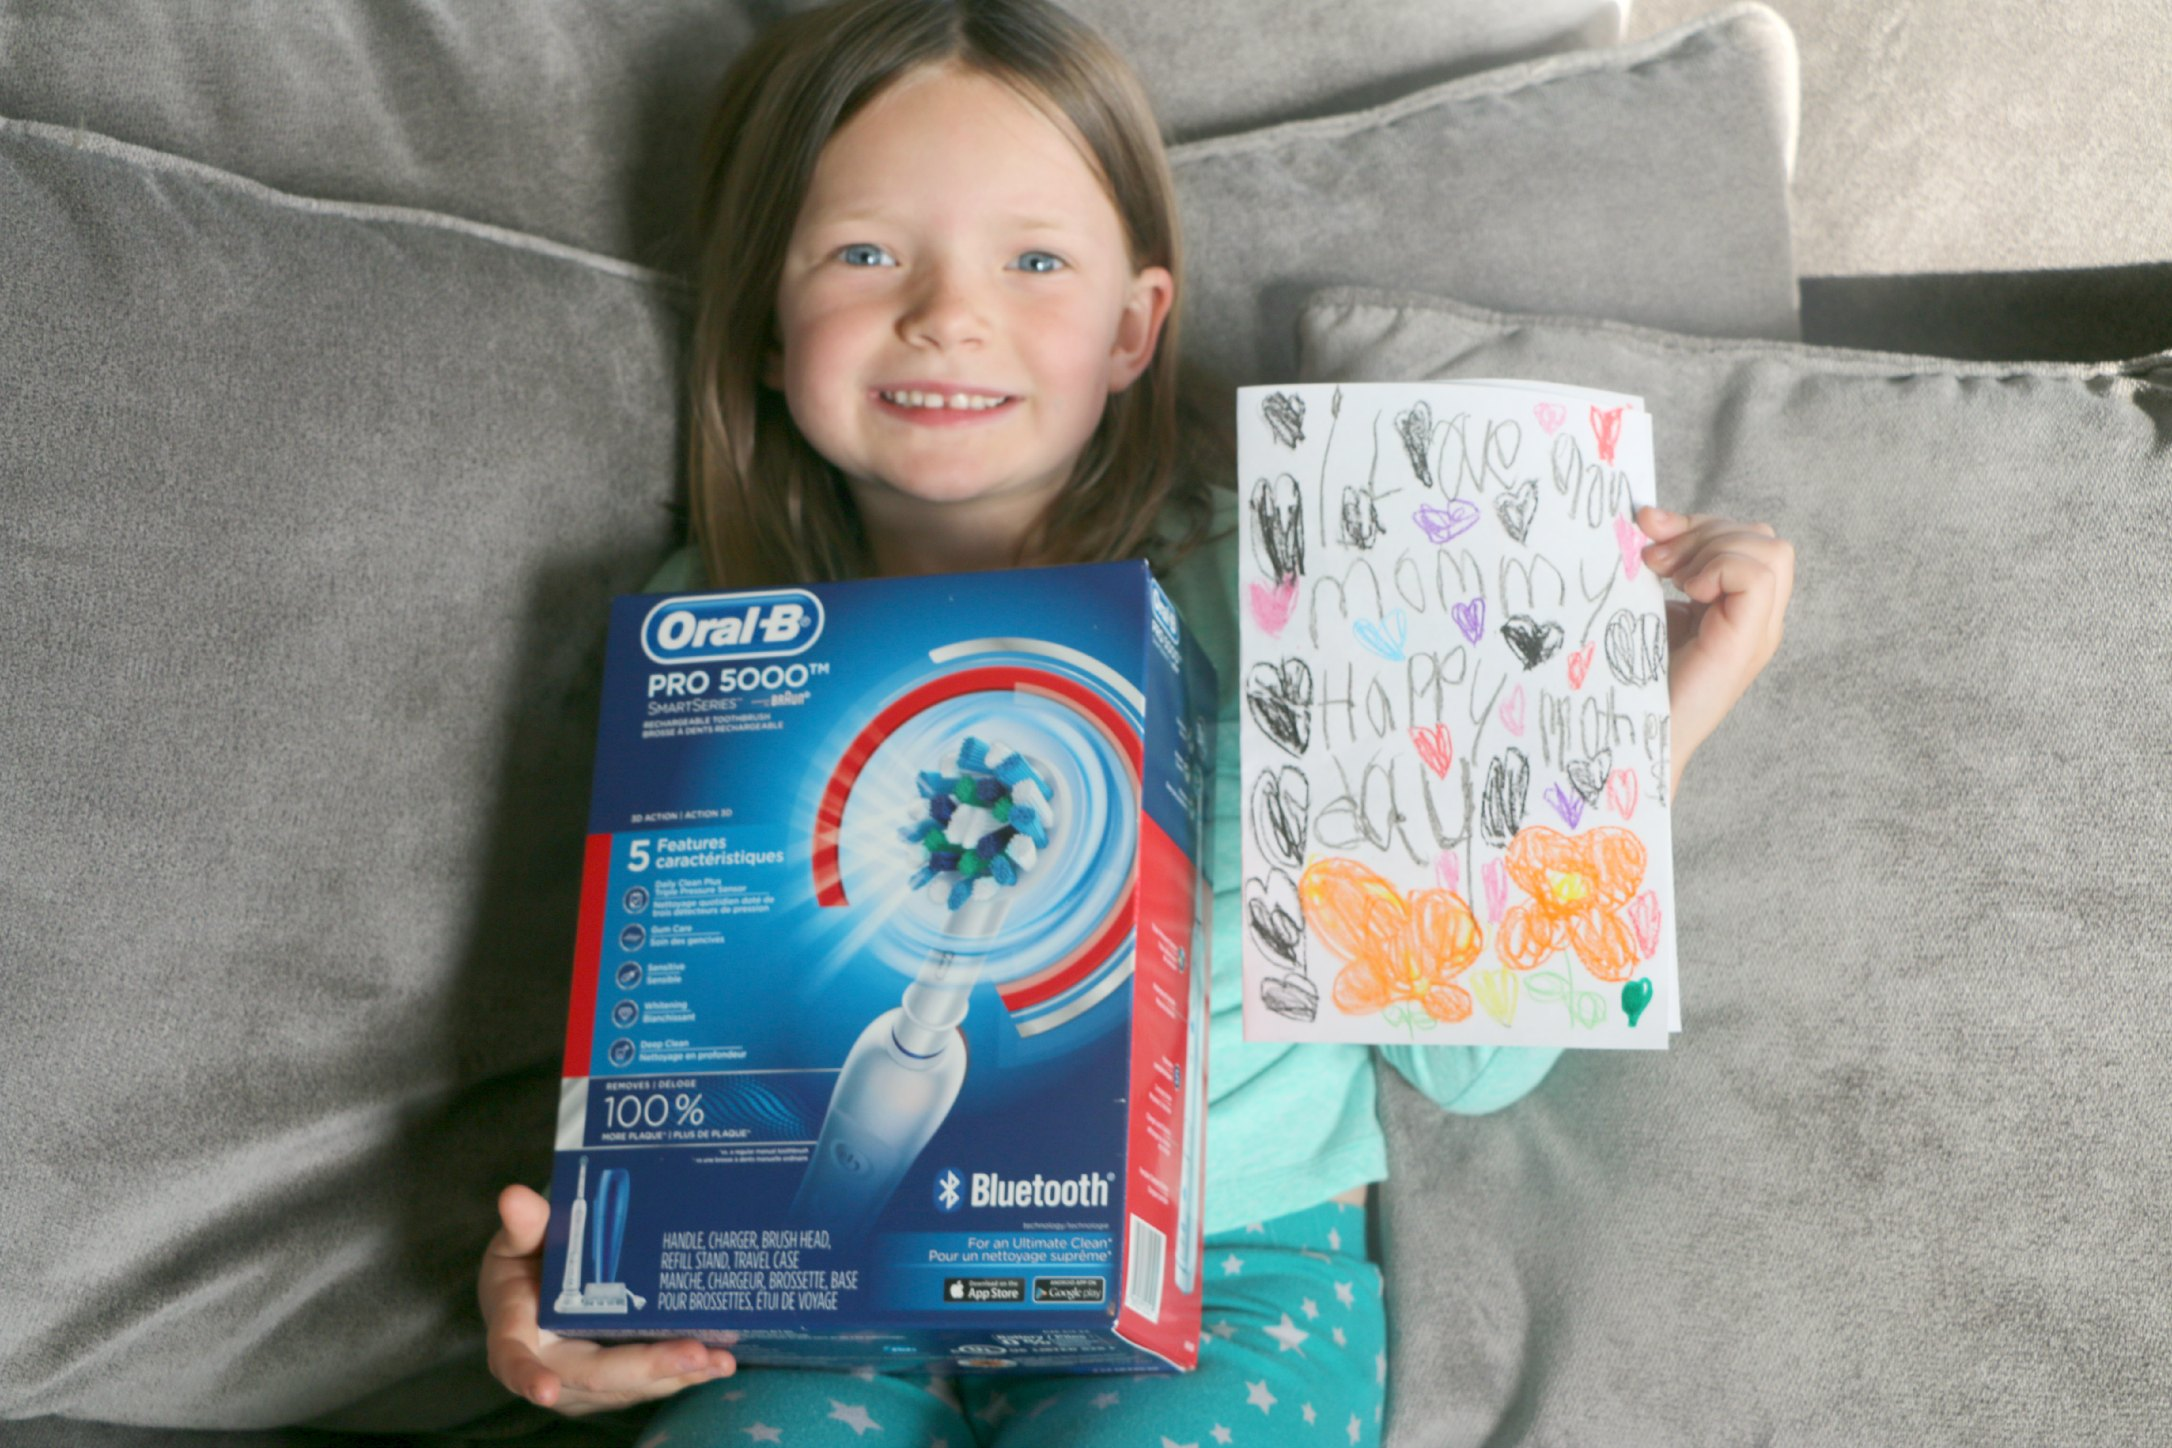 mothers day gift oral b pro 5000